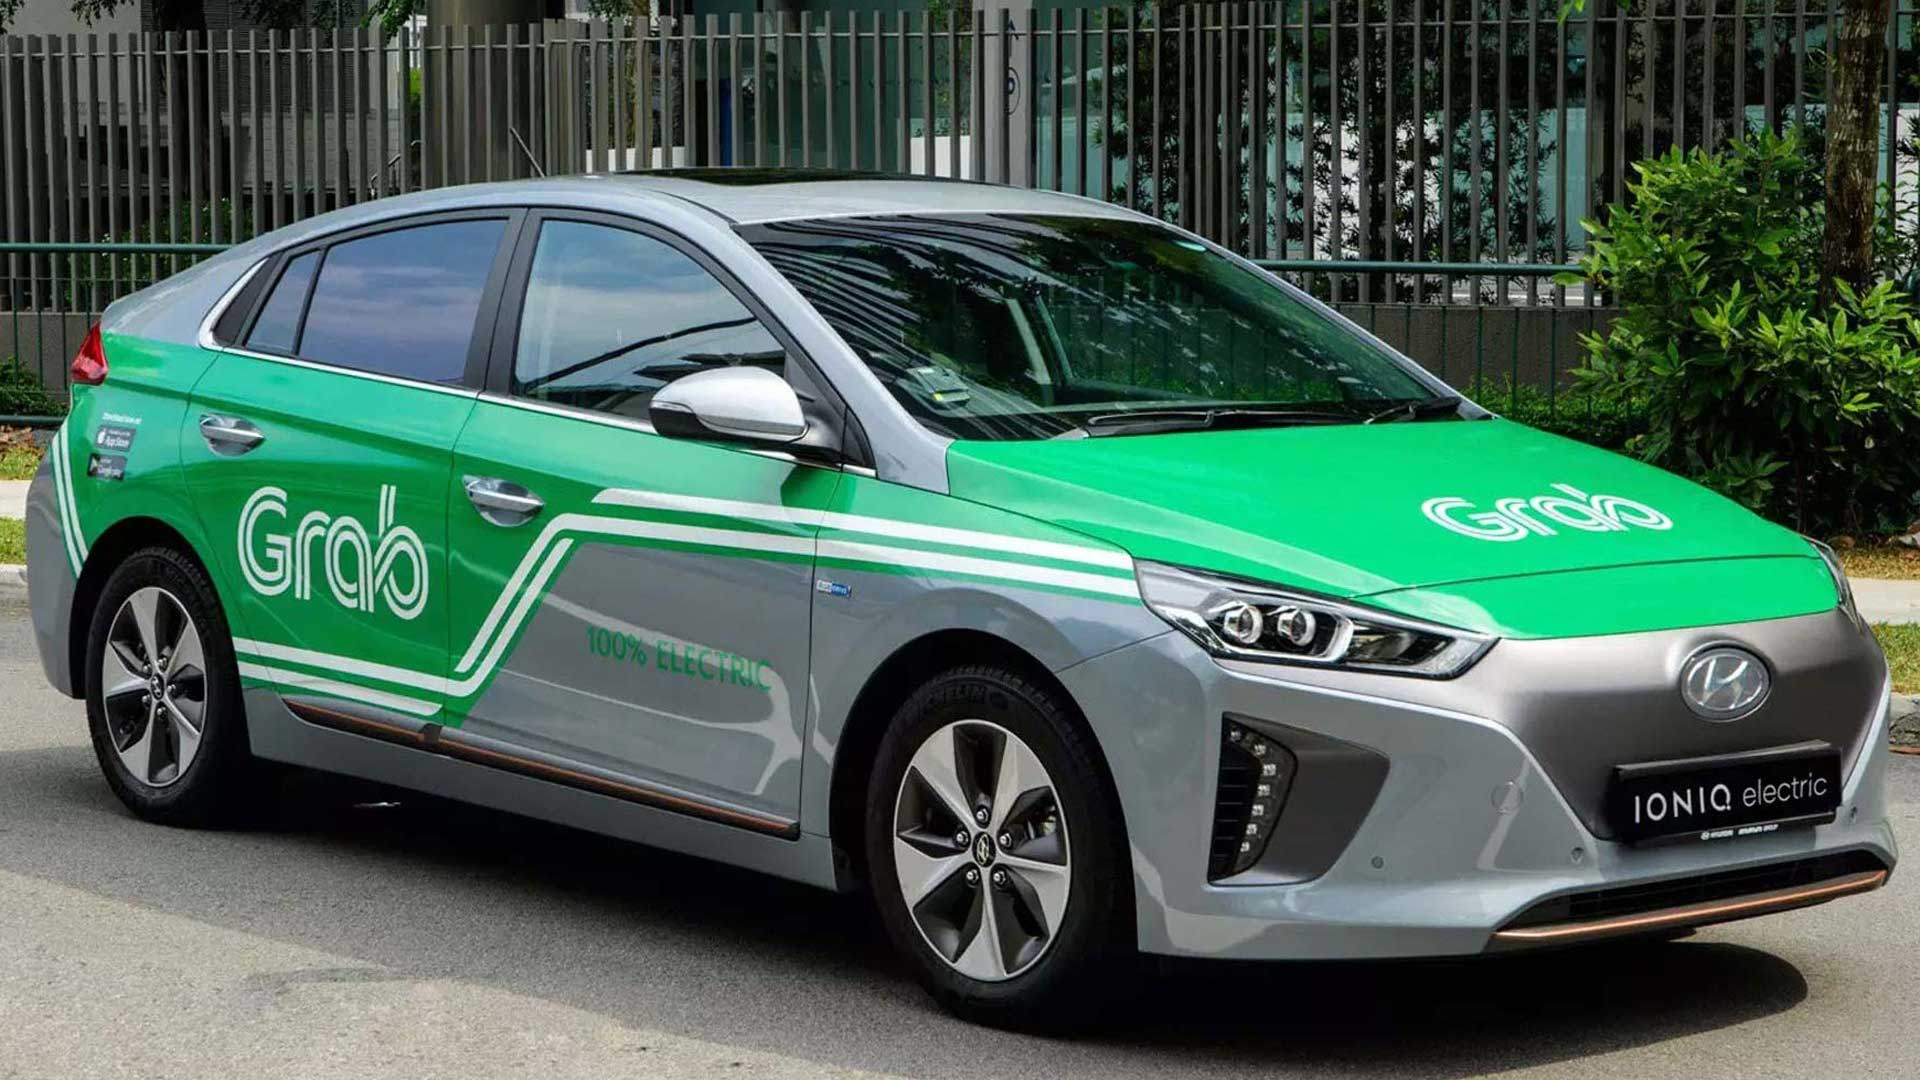 Grab in Vietnam: Uber Alternative of Vietnam